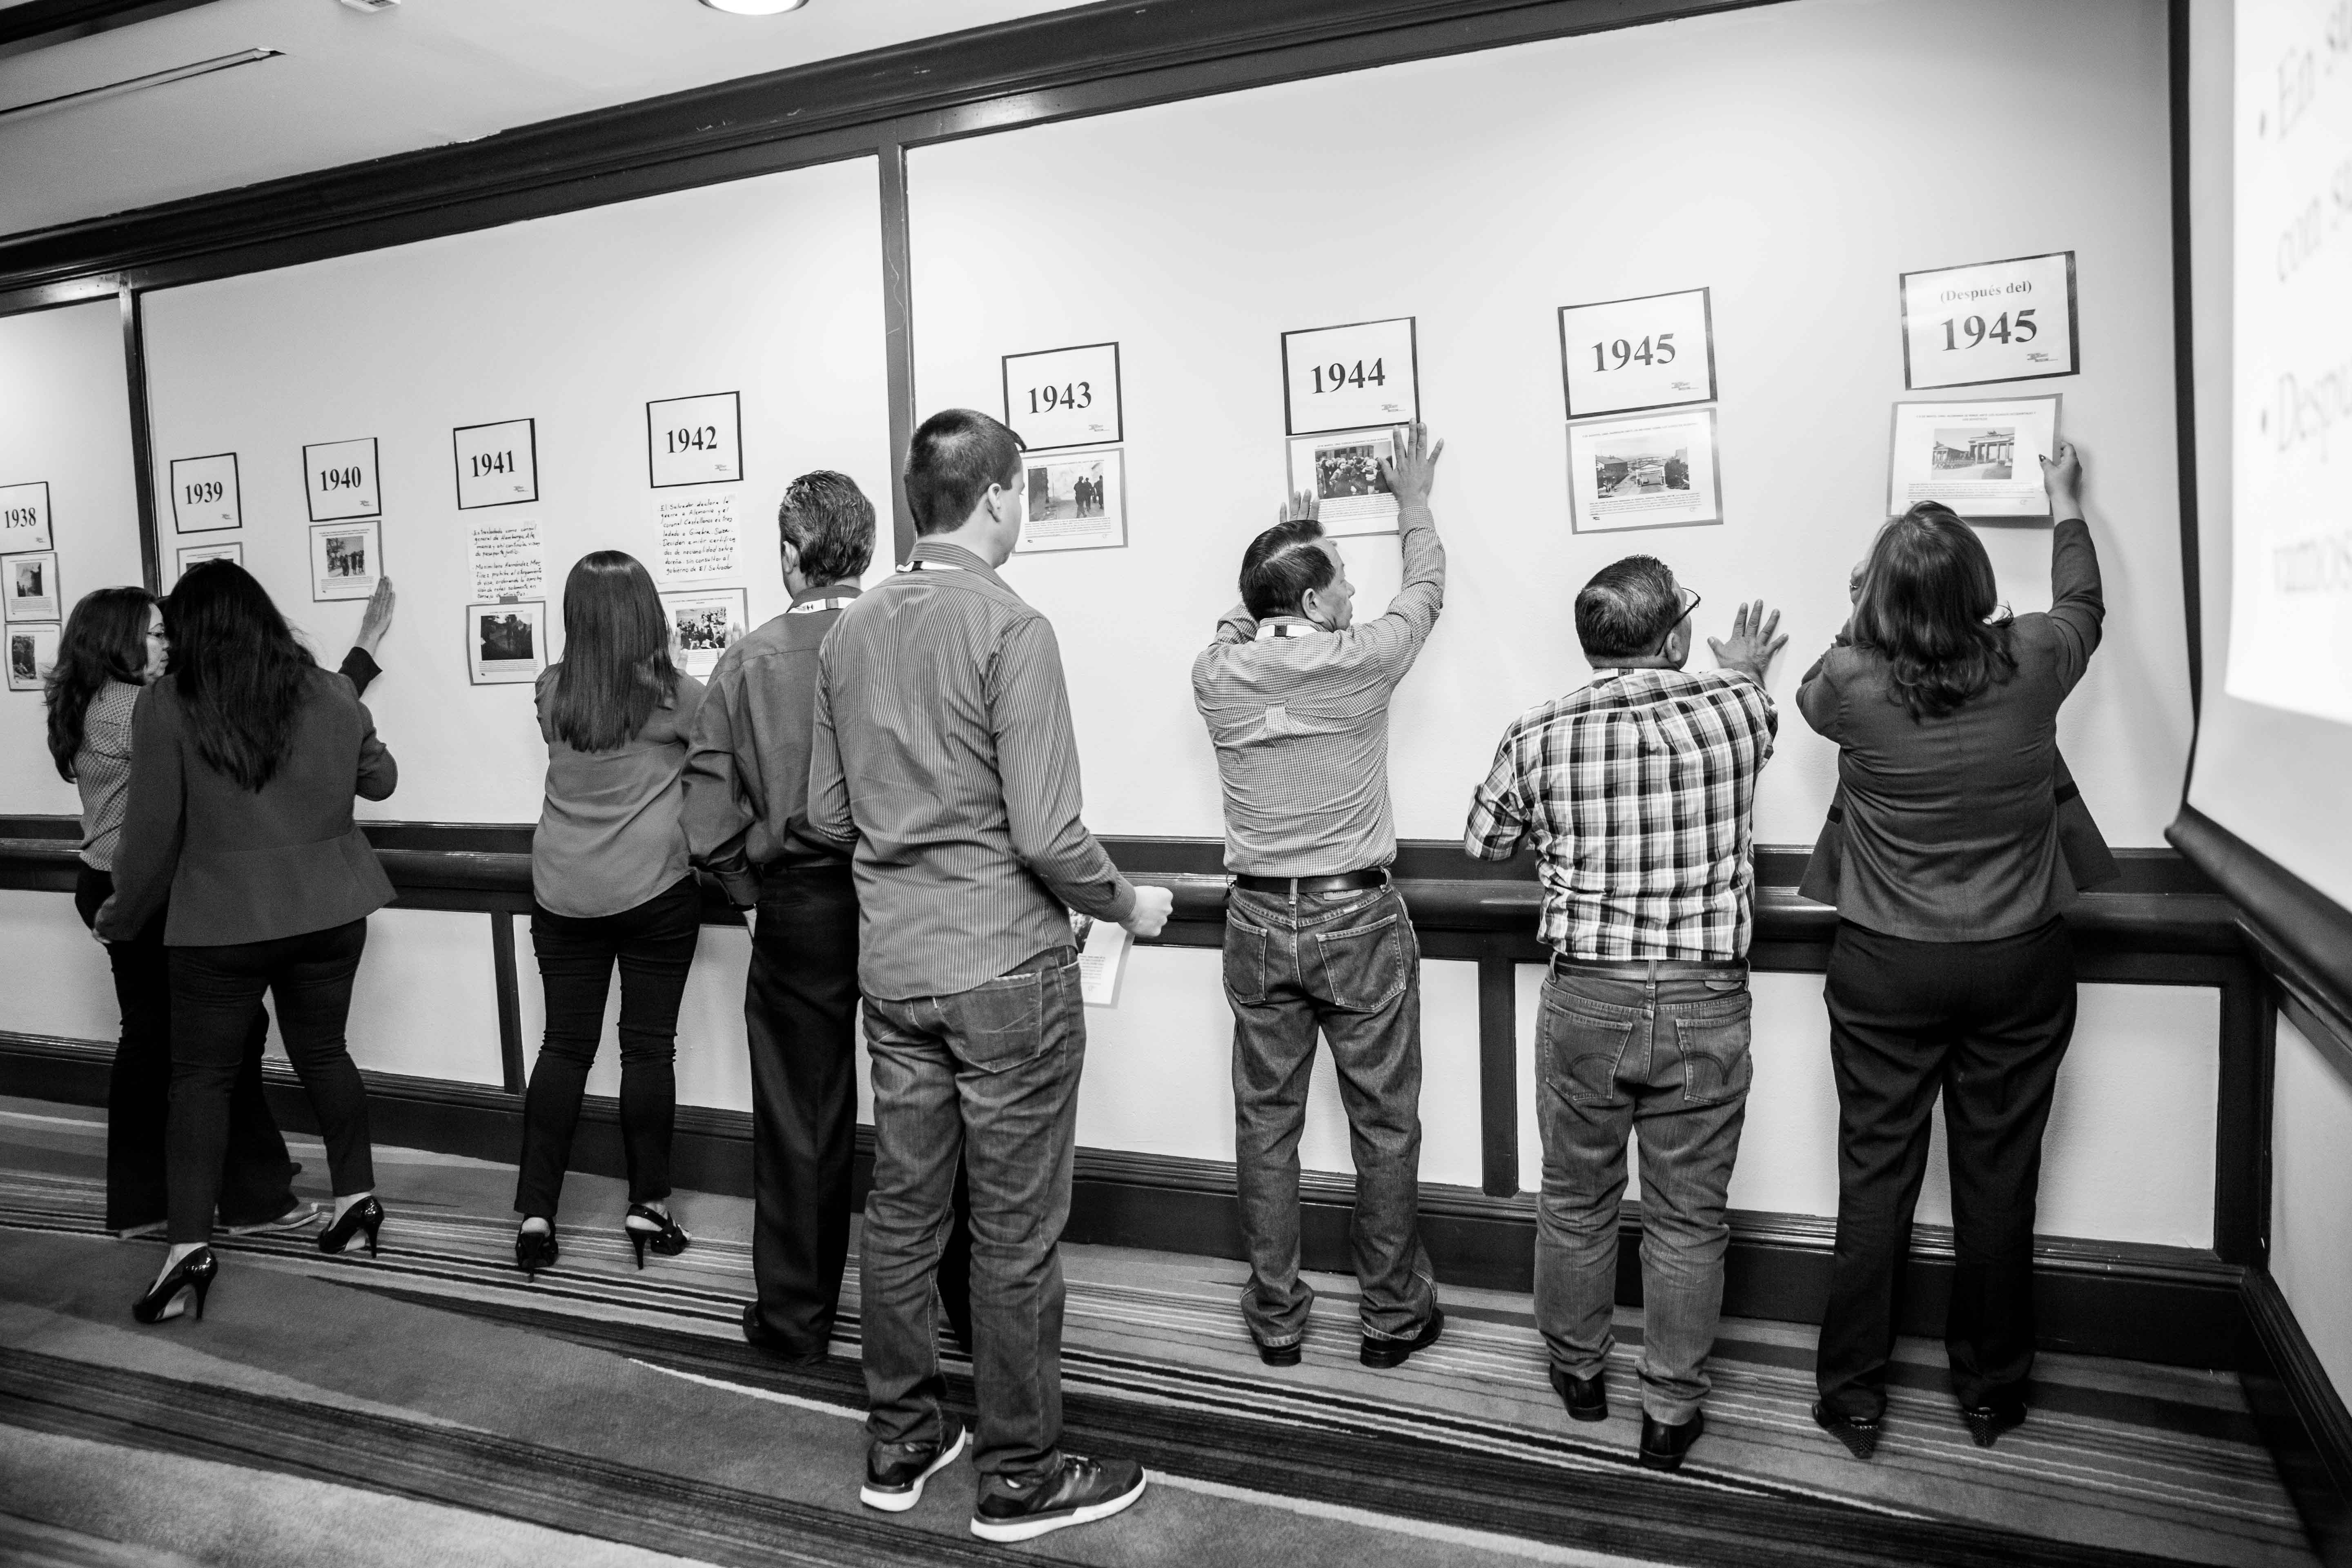 People standing in front of a timeline in a classroom, by Luis Paredes